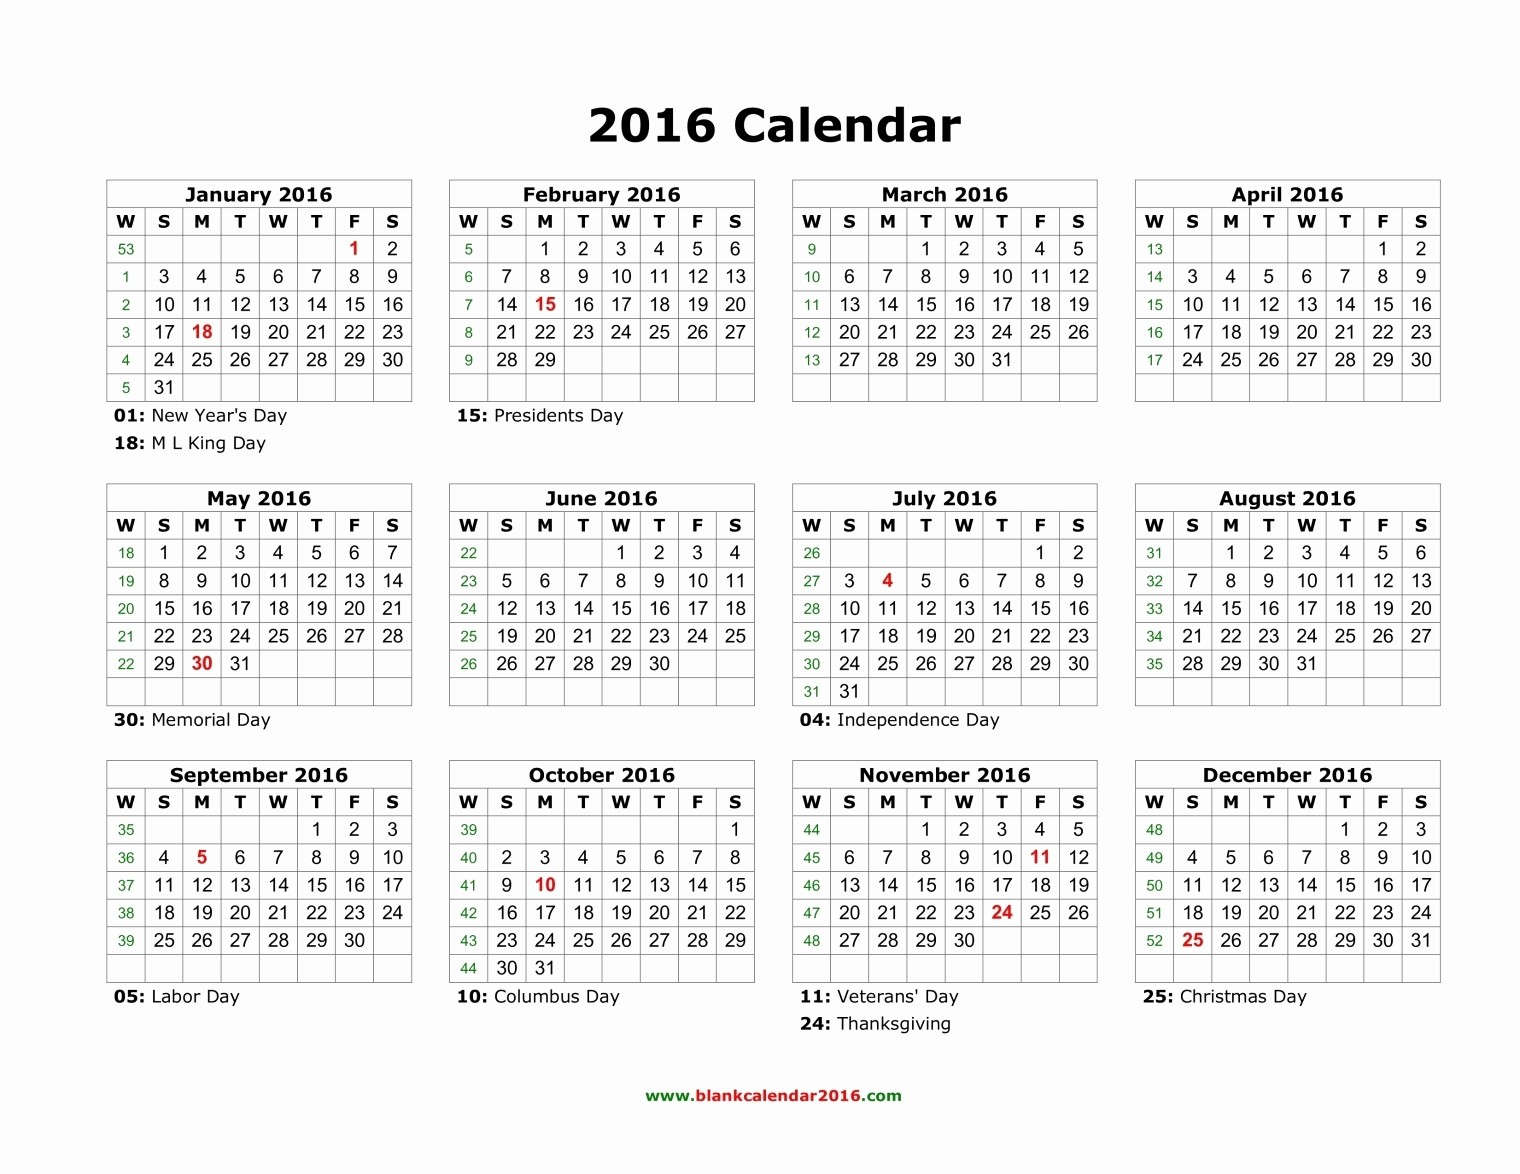 Full Year Calendar Template 2015 Luxury 2016 Yearly Calendar with Holidays Printable